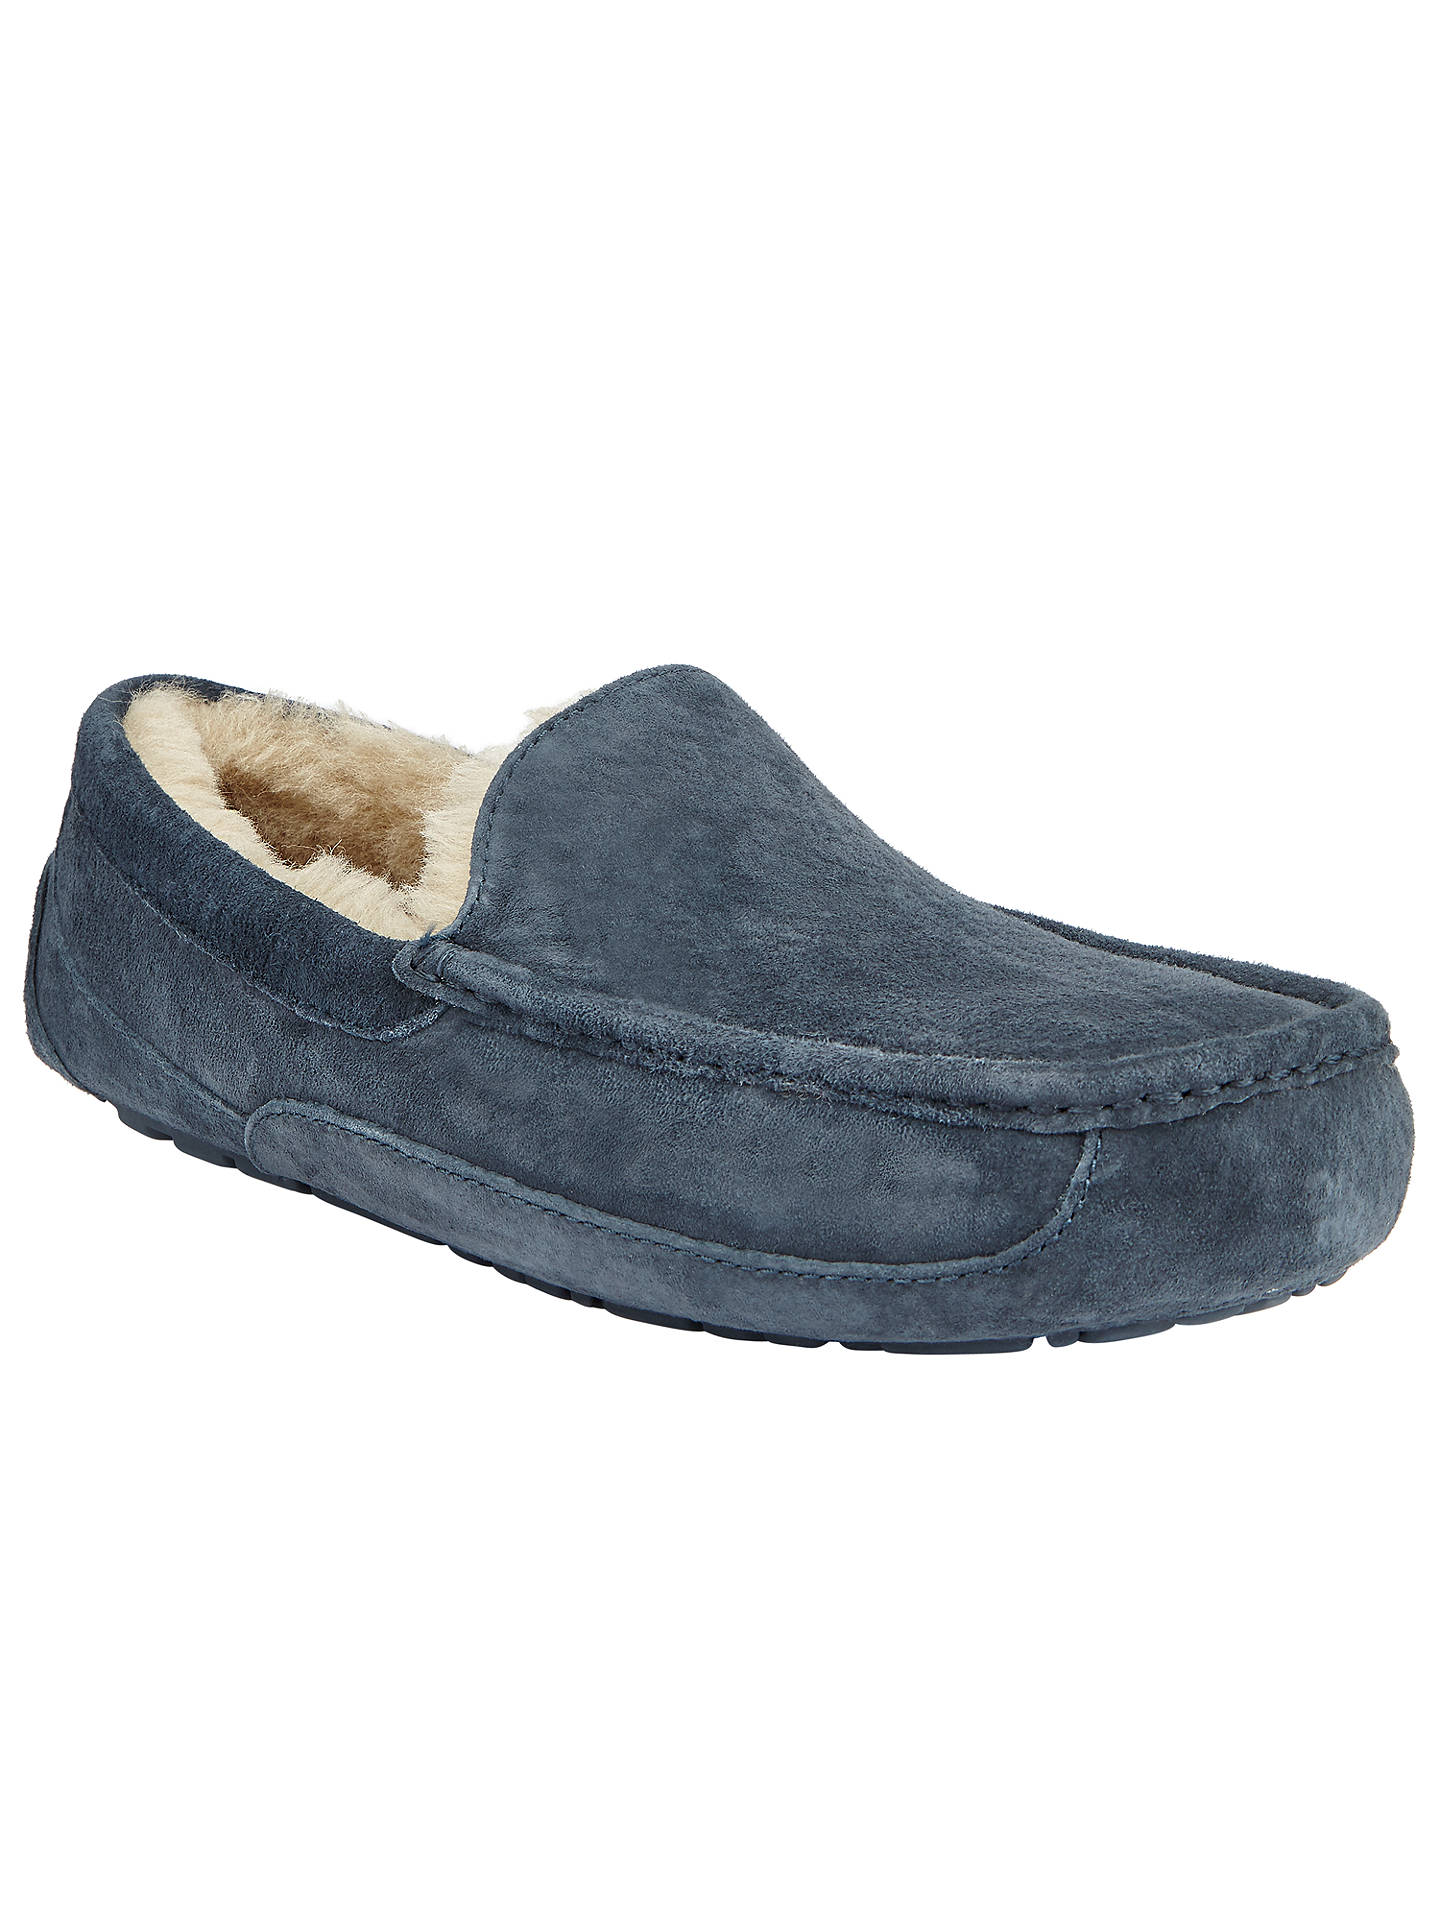 1c1fe984872 UGG Ascot Moccasin Suede Slippers, Navy at John Lewis & Partners